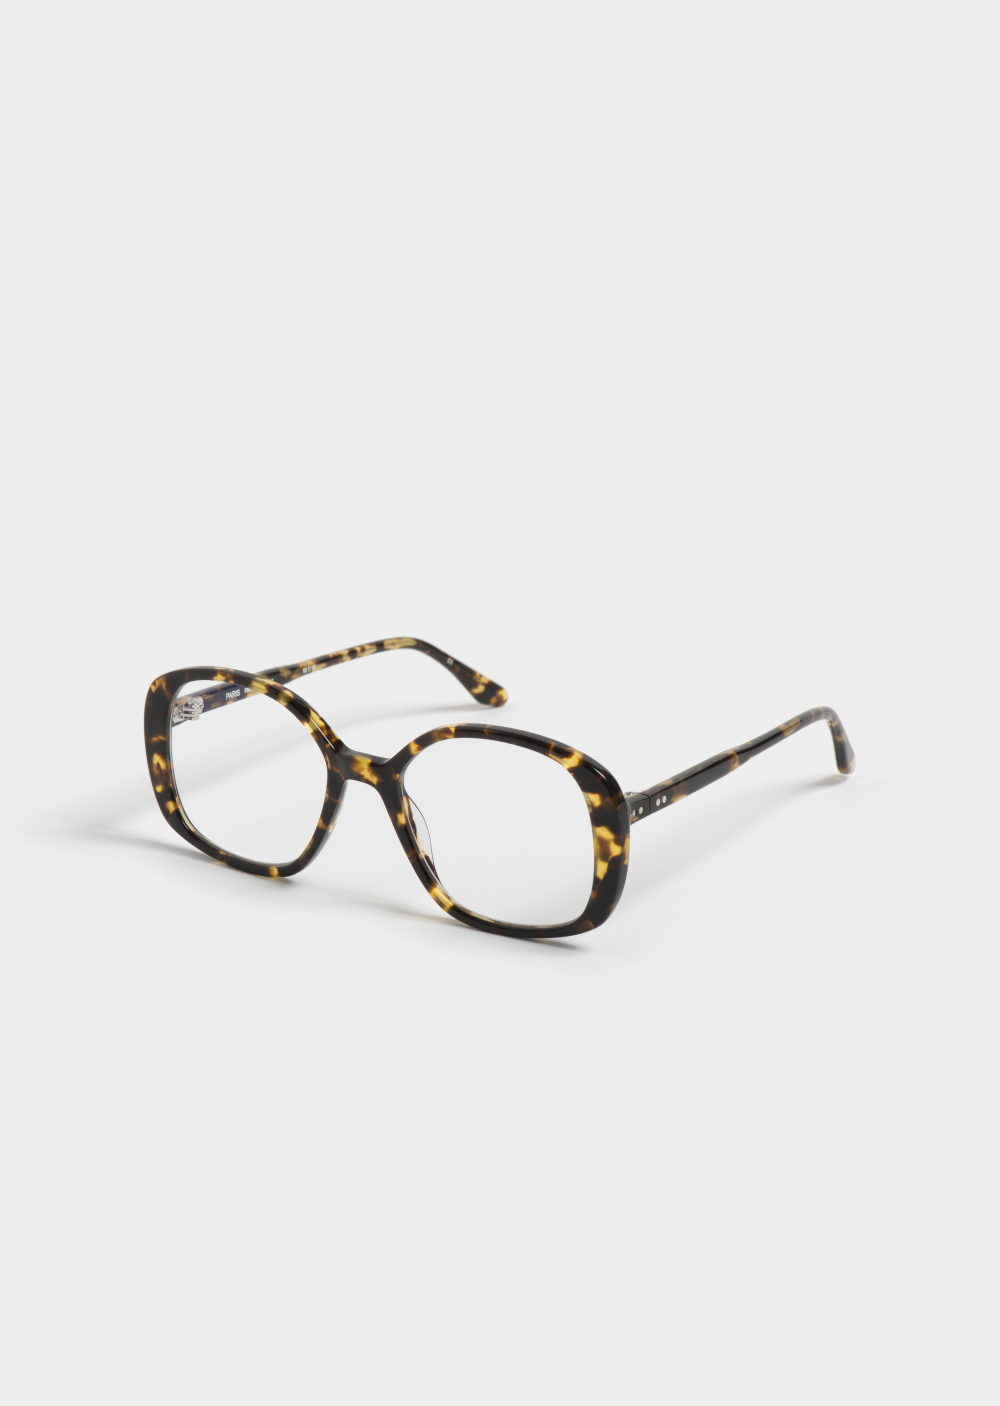 PETER AND MAY -  - LT9 Perle Tortoise